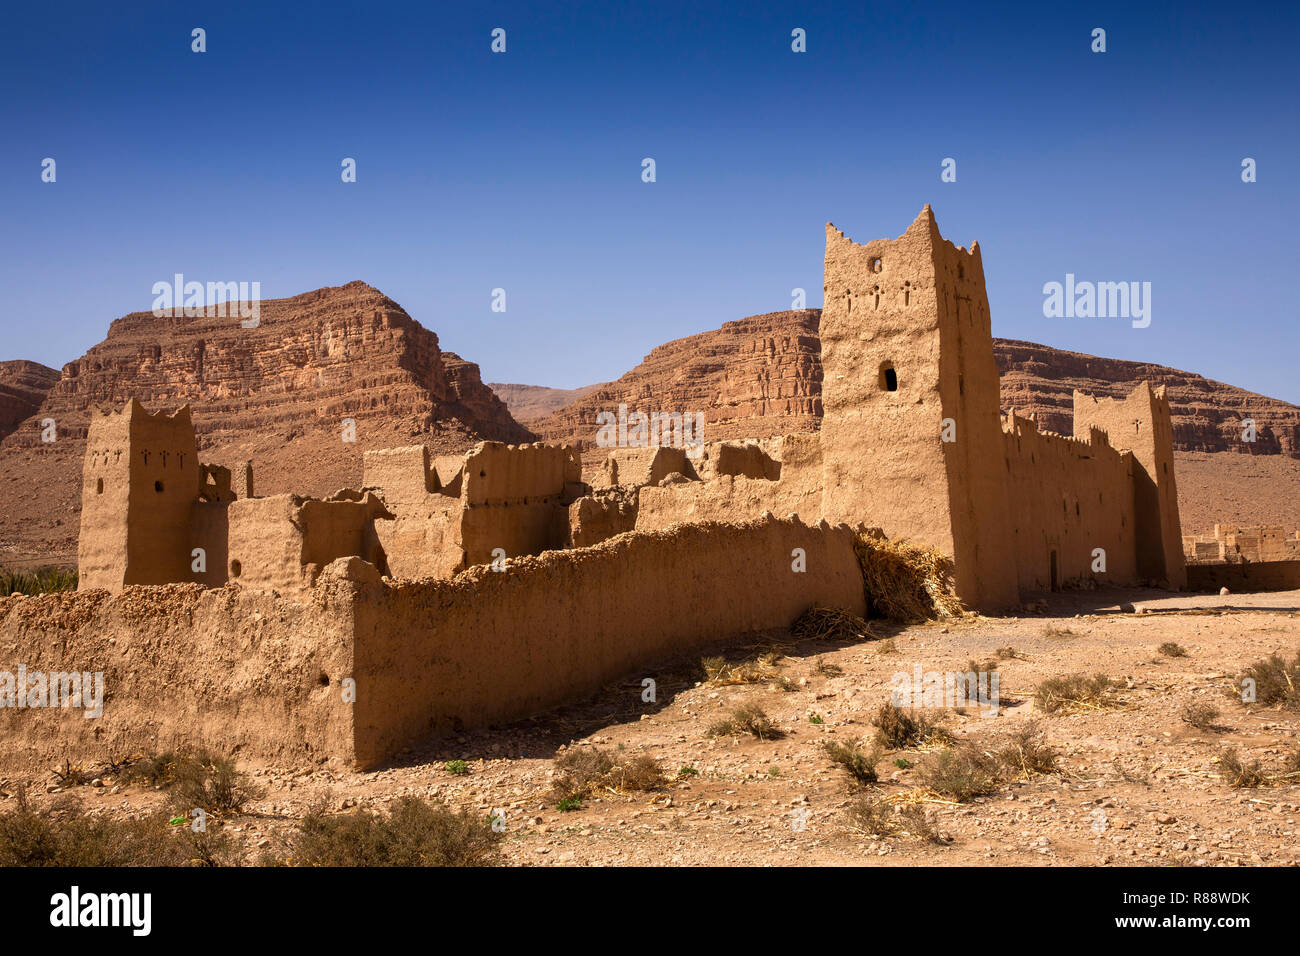 Morocco, Ziz River Gorge, Guers Tiallaline, ancient Kasbah remains Stock Photo